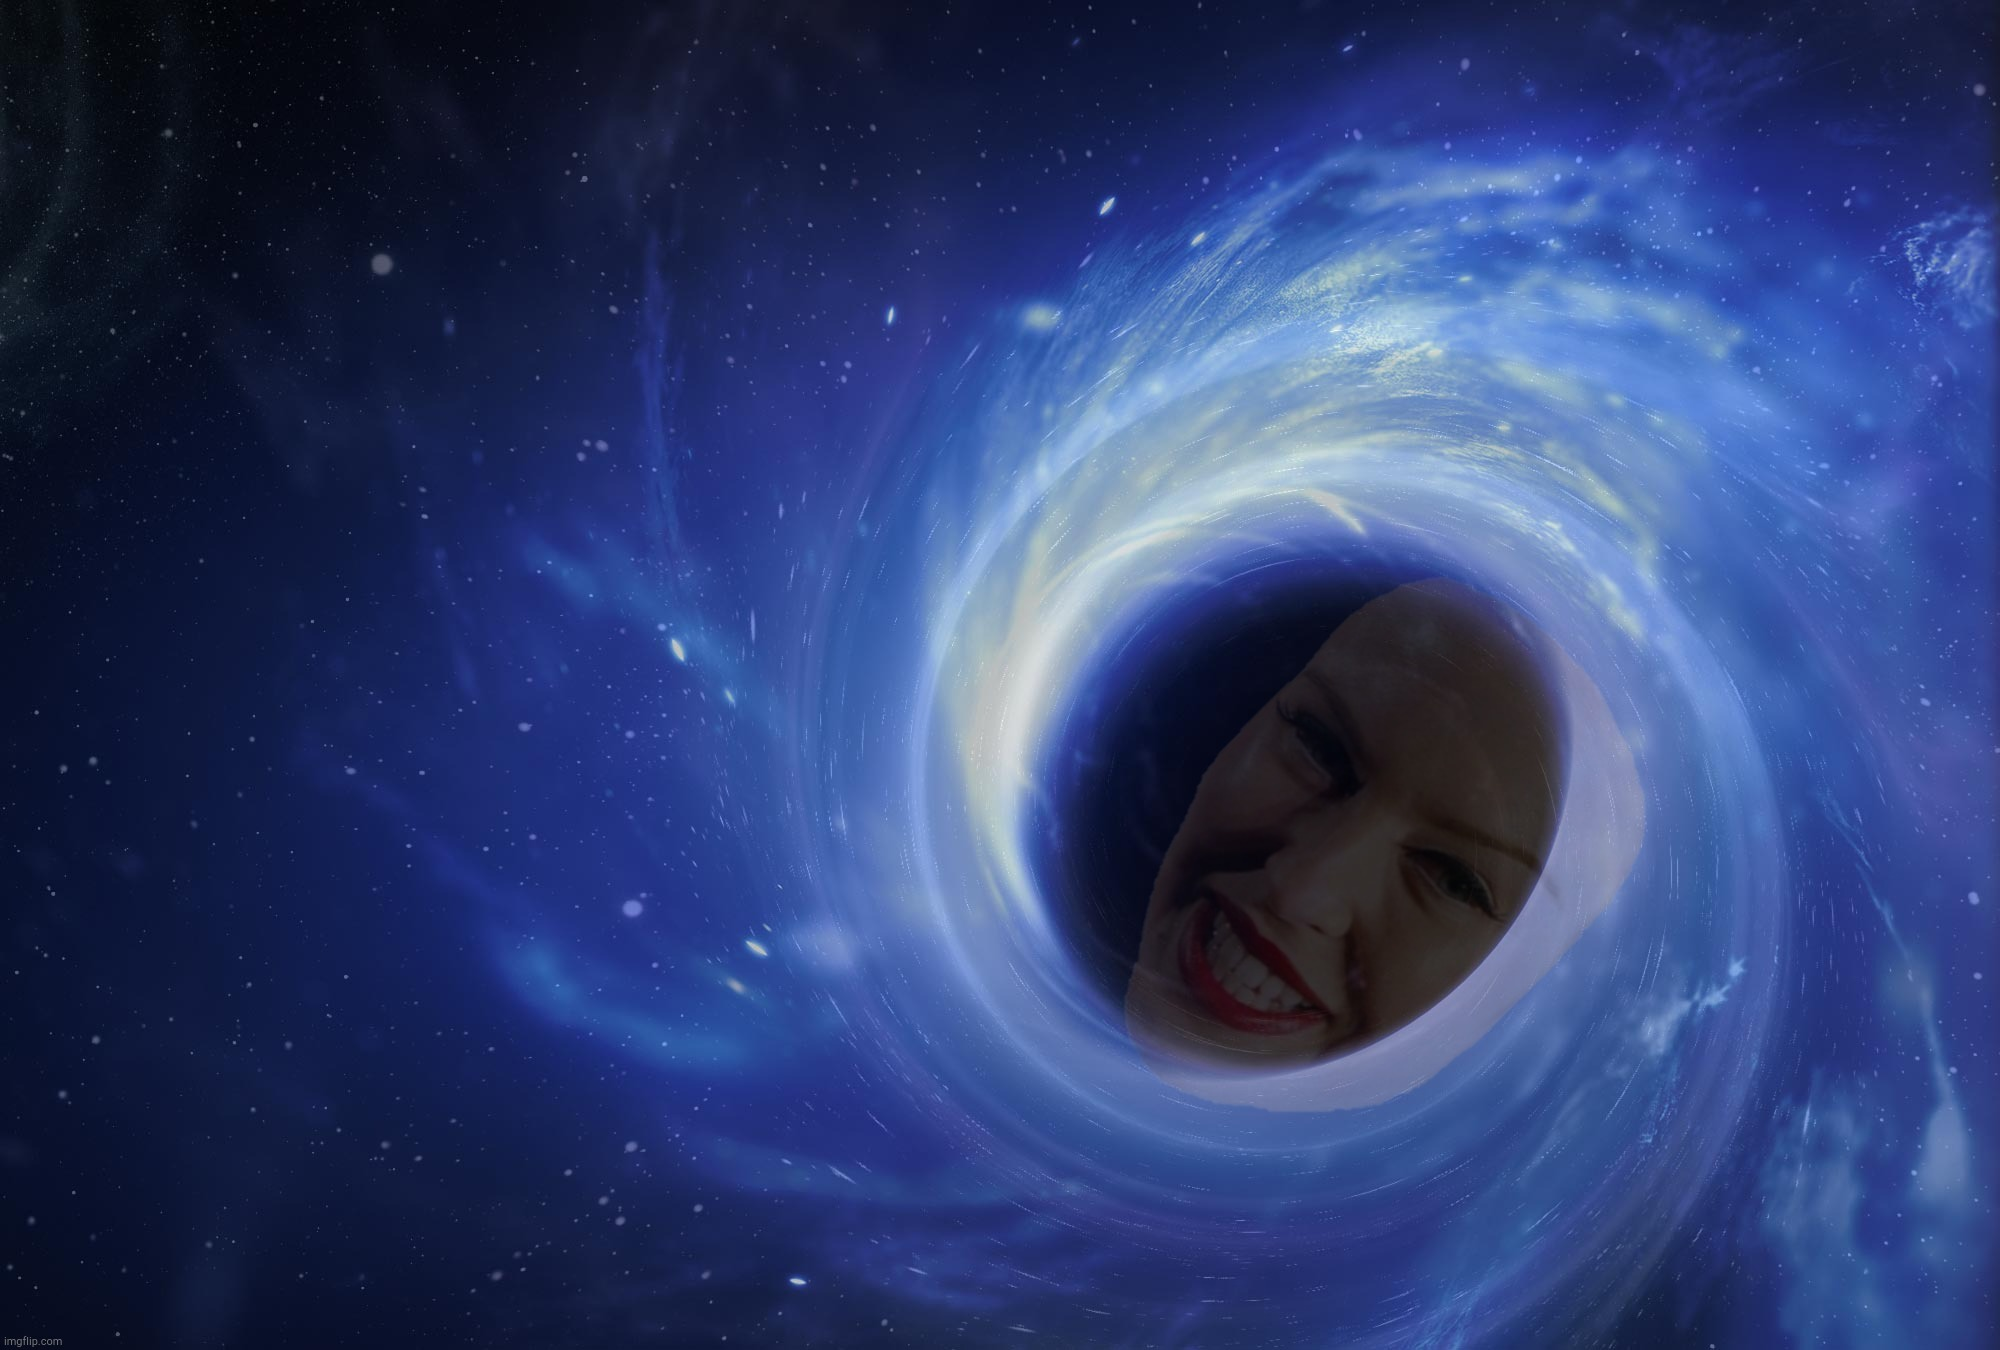 In space, no one can hear your screams induced by 'Mutton' Minogue's latest,,, | image tagged in black hole,kylie minogue,kylie botox mask,kylieminoguesucks,crossover templates,the black hit of space | made w/ Imgflip meme maker